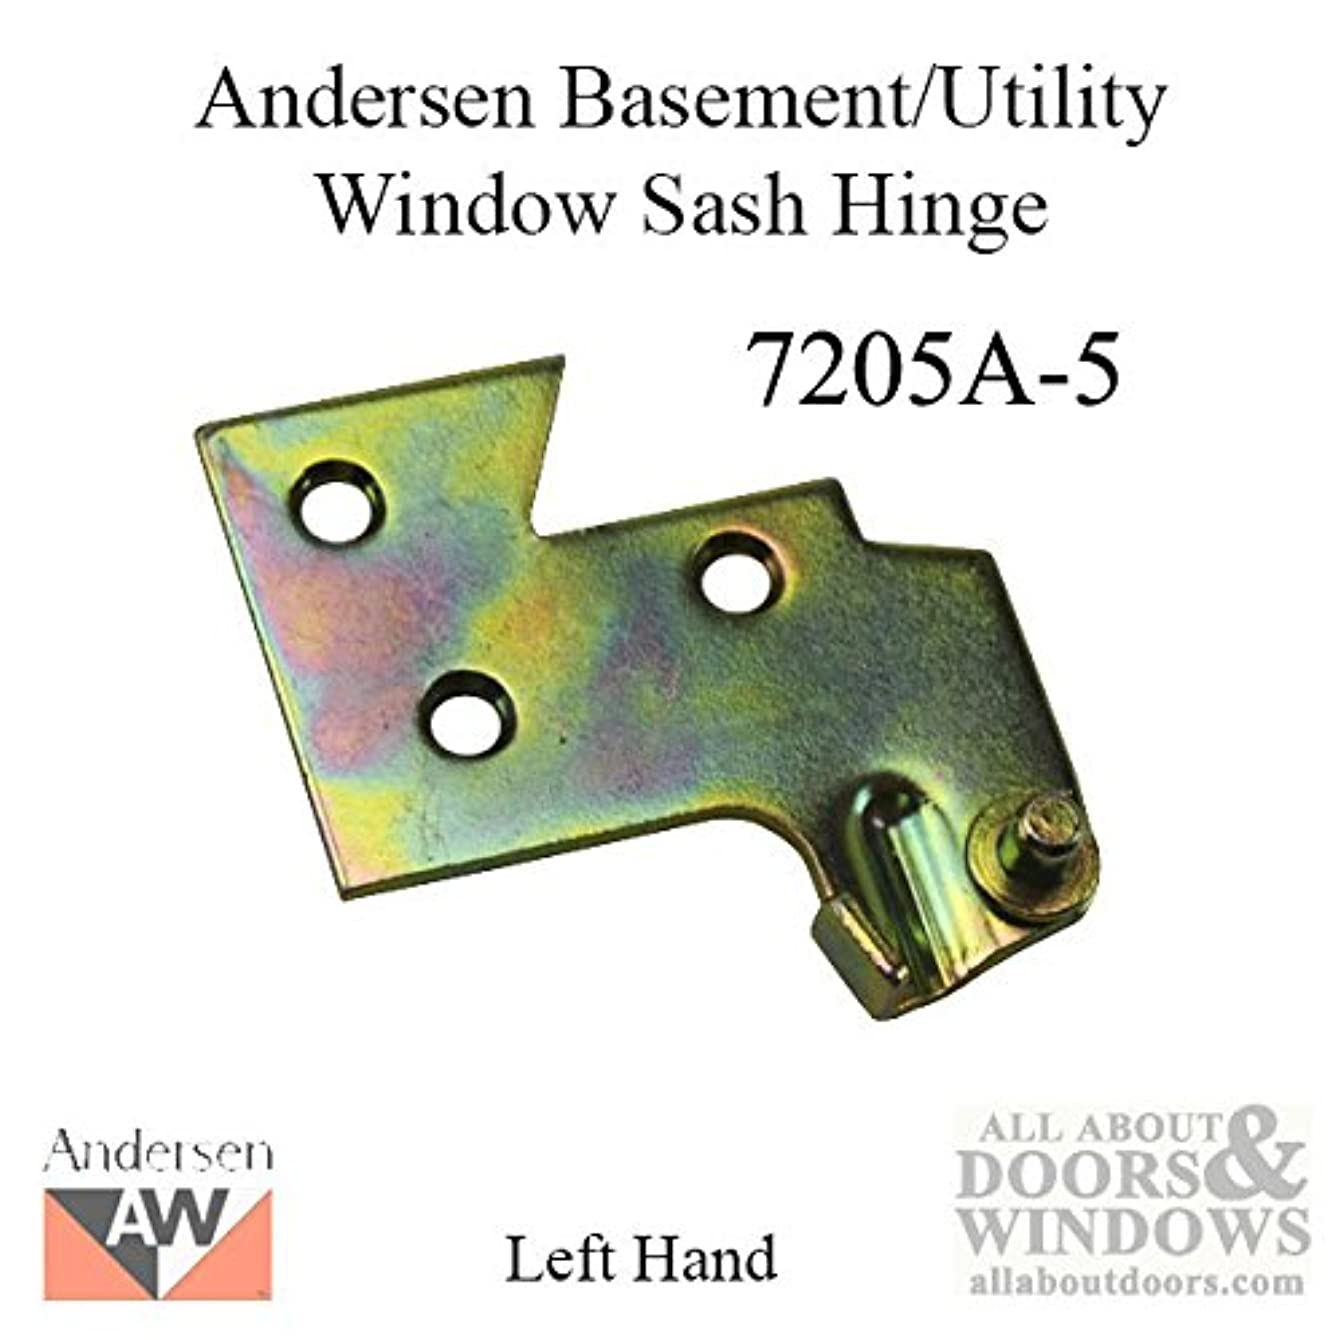 Sash Hinge - Right 7205-5 Andersen Basement/Utility window